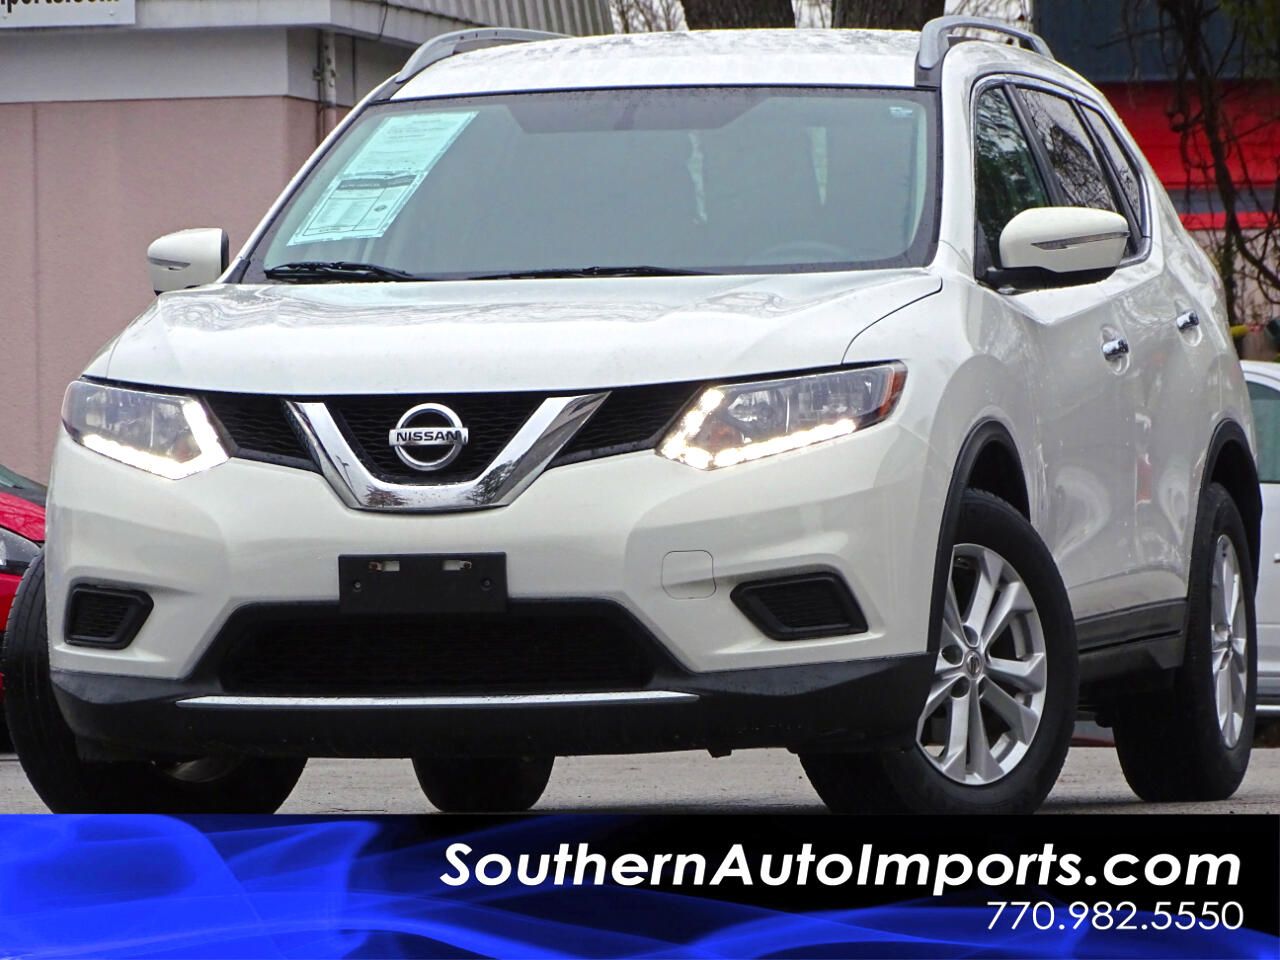 2014 Nissan Rogue SV w/Back Up Camera 1owner